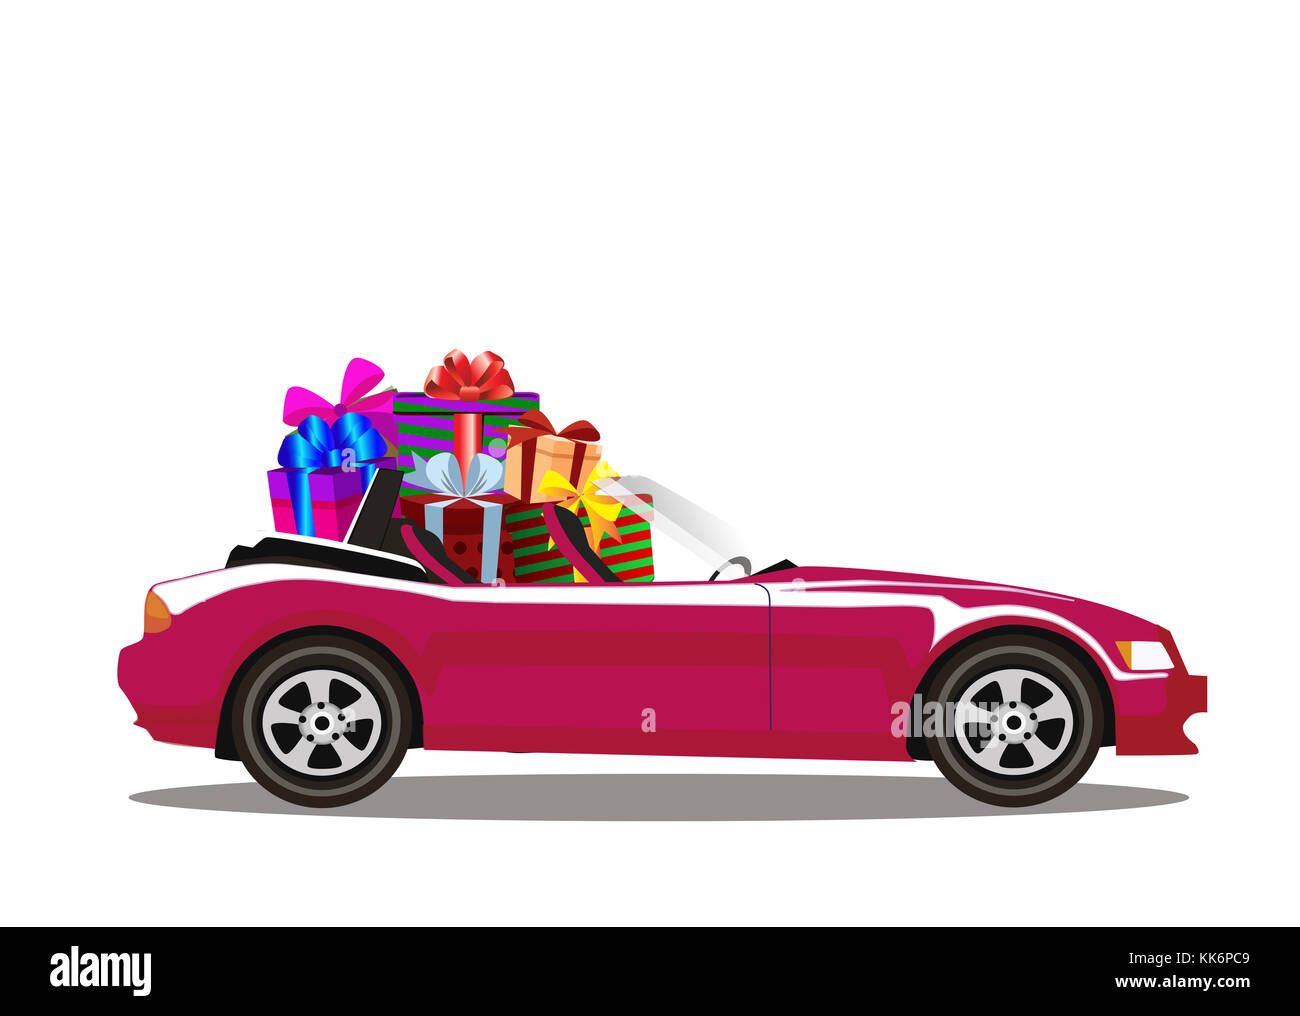 Purple modern cartoon cabriolet car full of gift boxes isolated on white background. Sport car. Vector illustration. - Stock Image